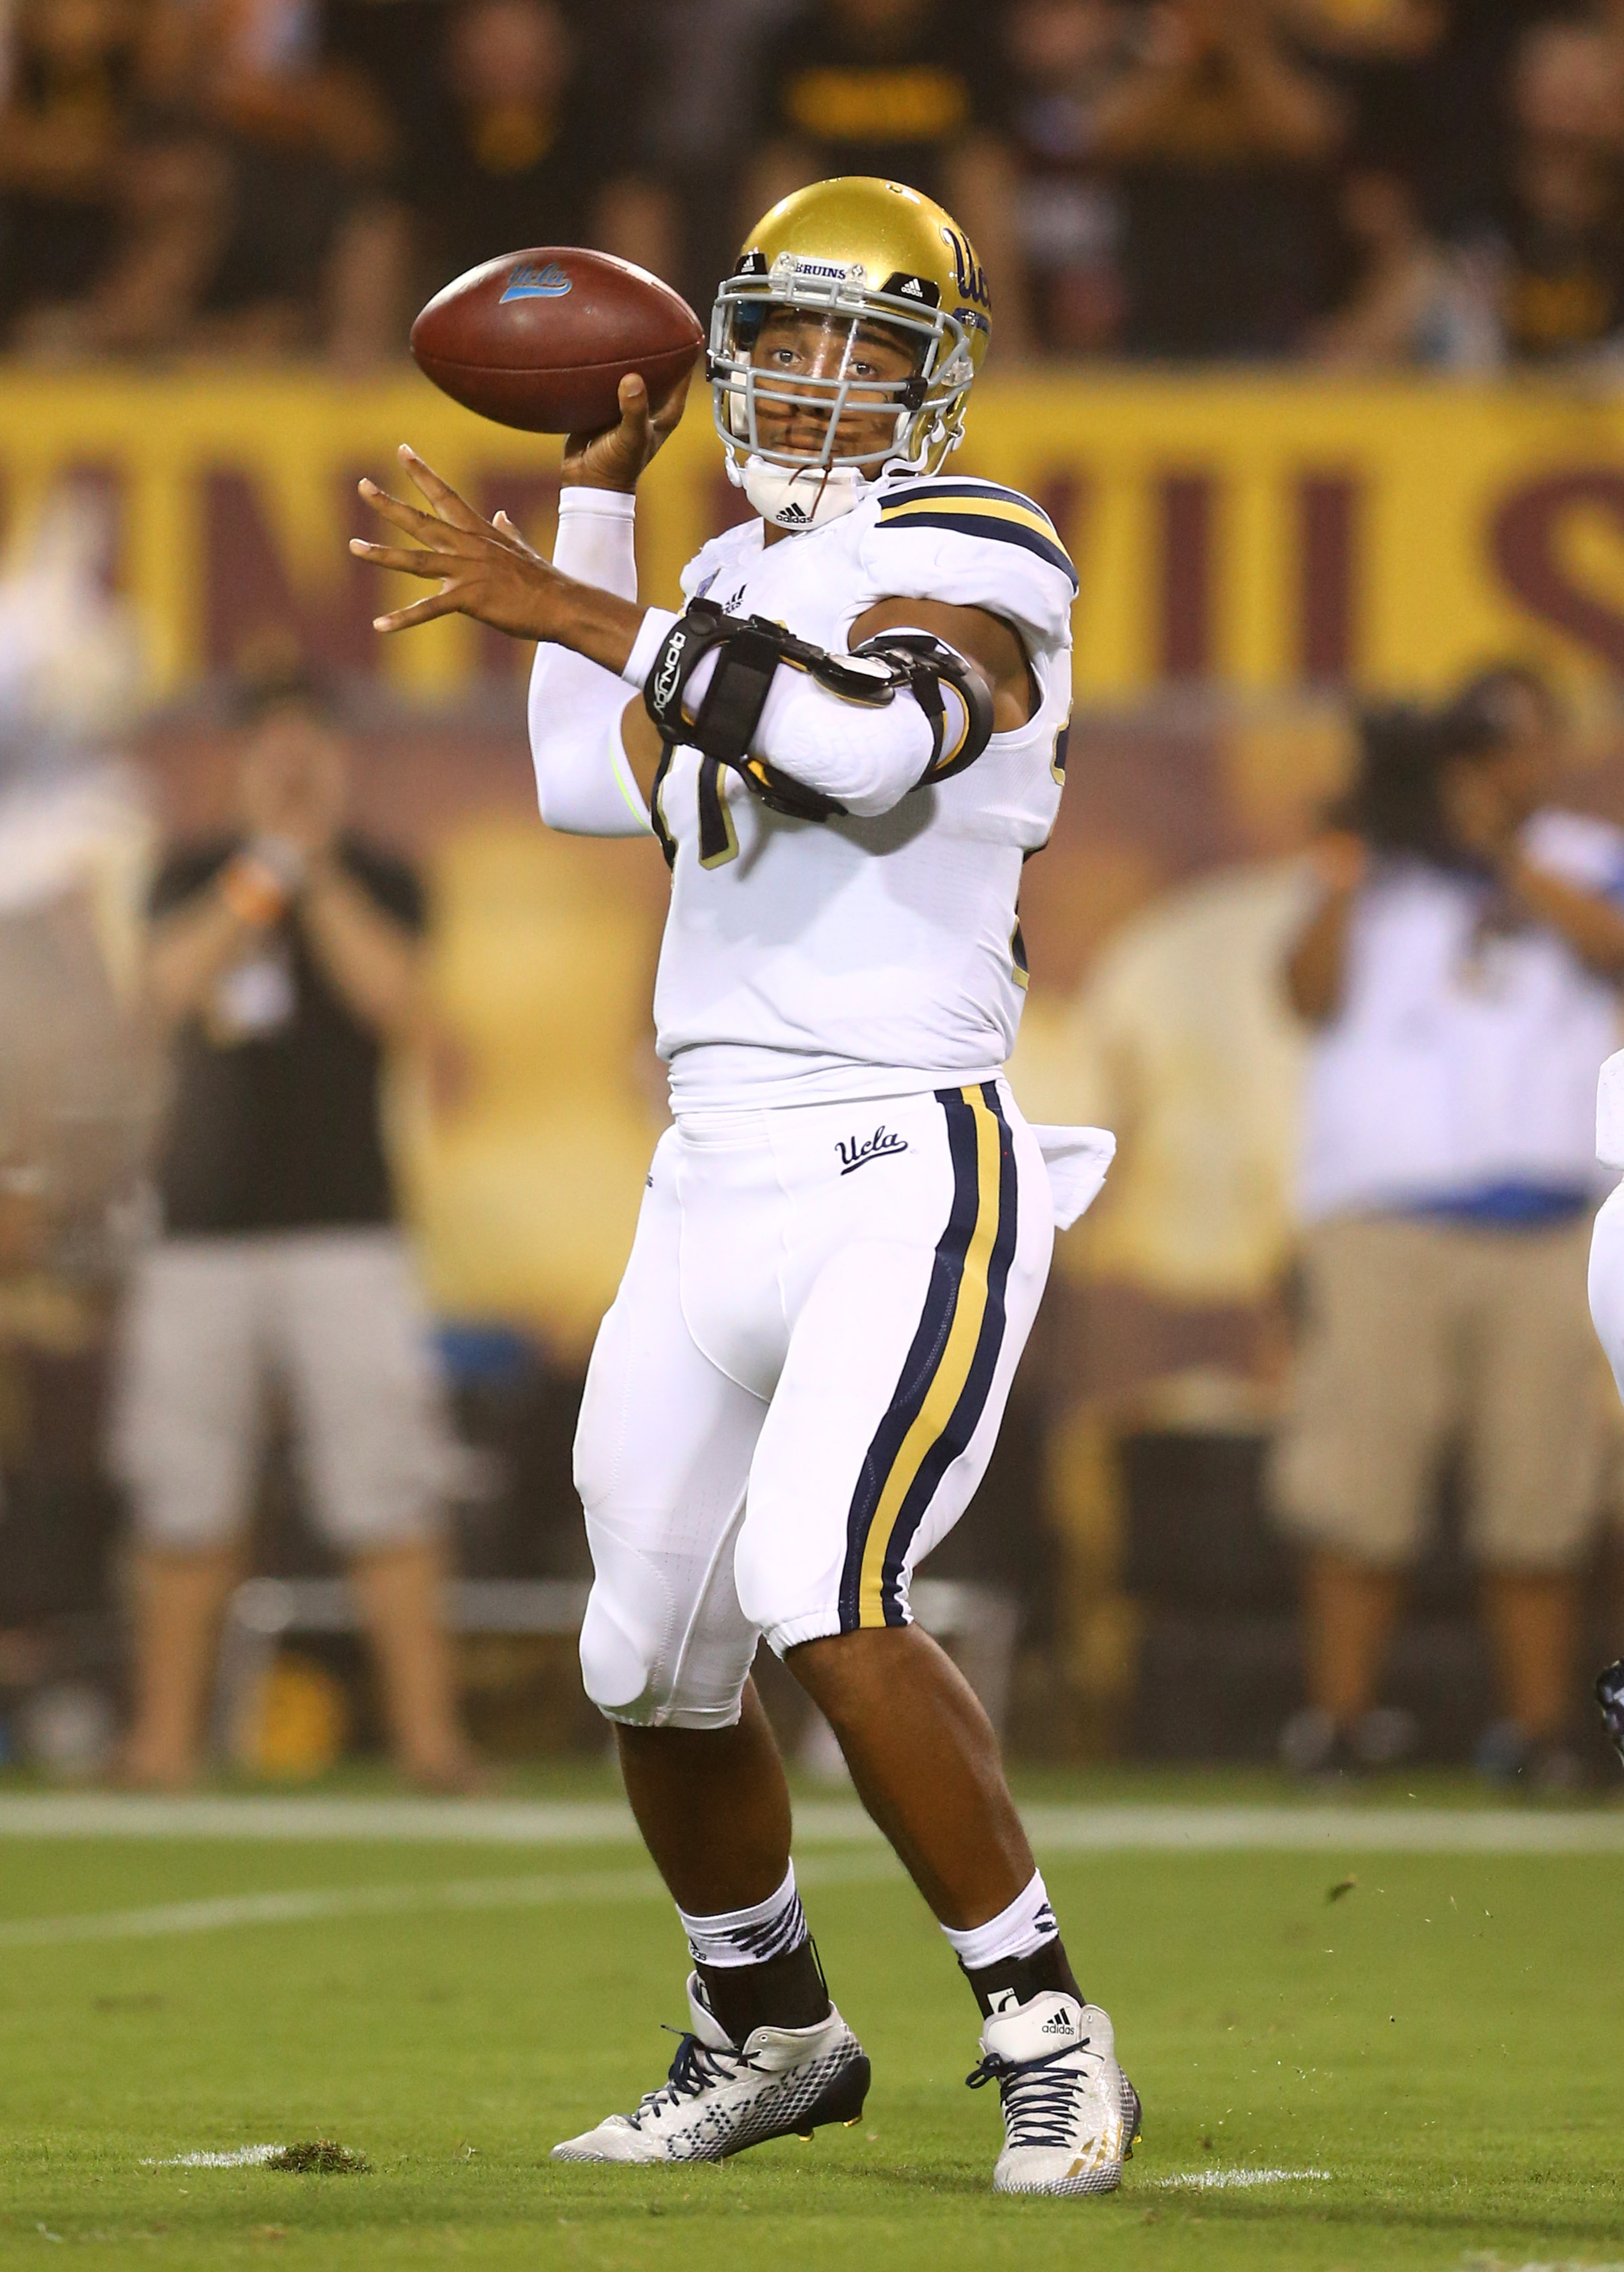 UCLA quarterback and Heisman candidate Bretty Hundley leads his eighth-ranked Bruins against Utah on Saturday.